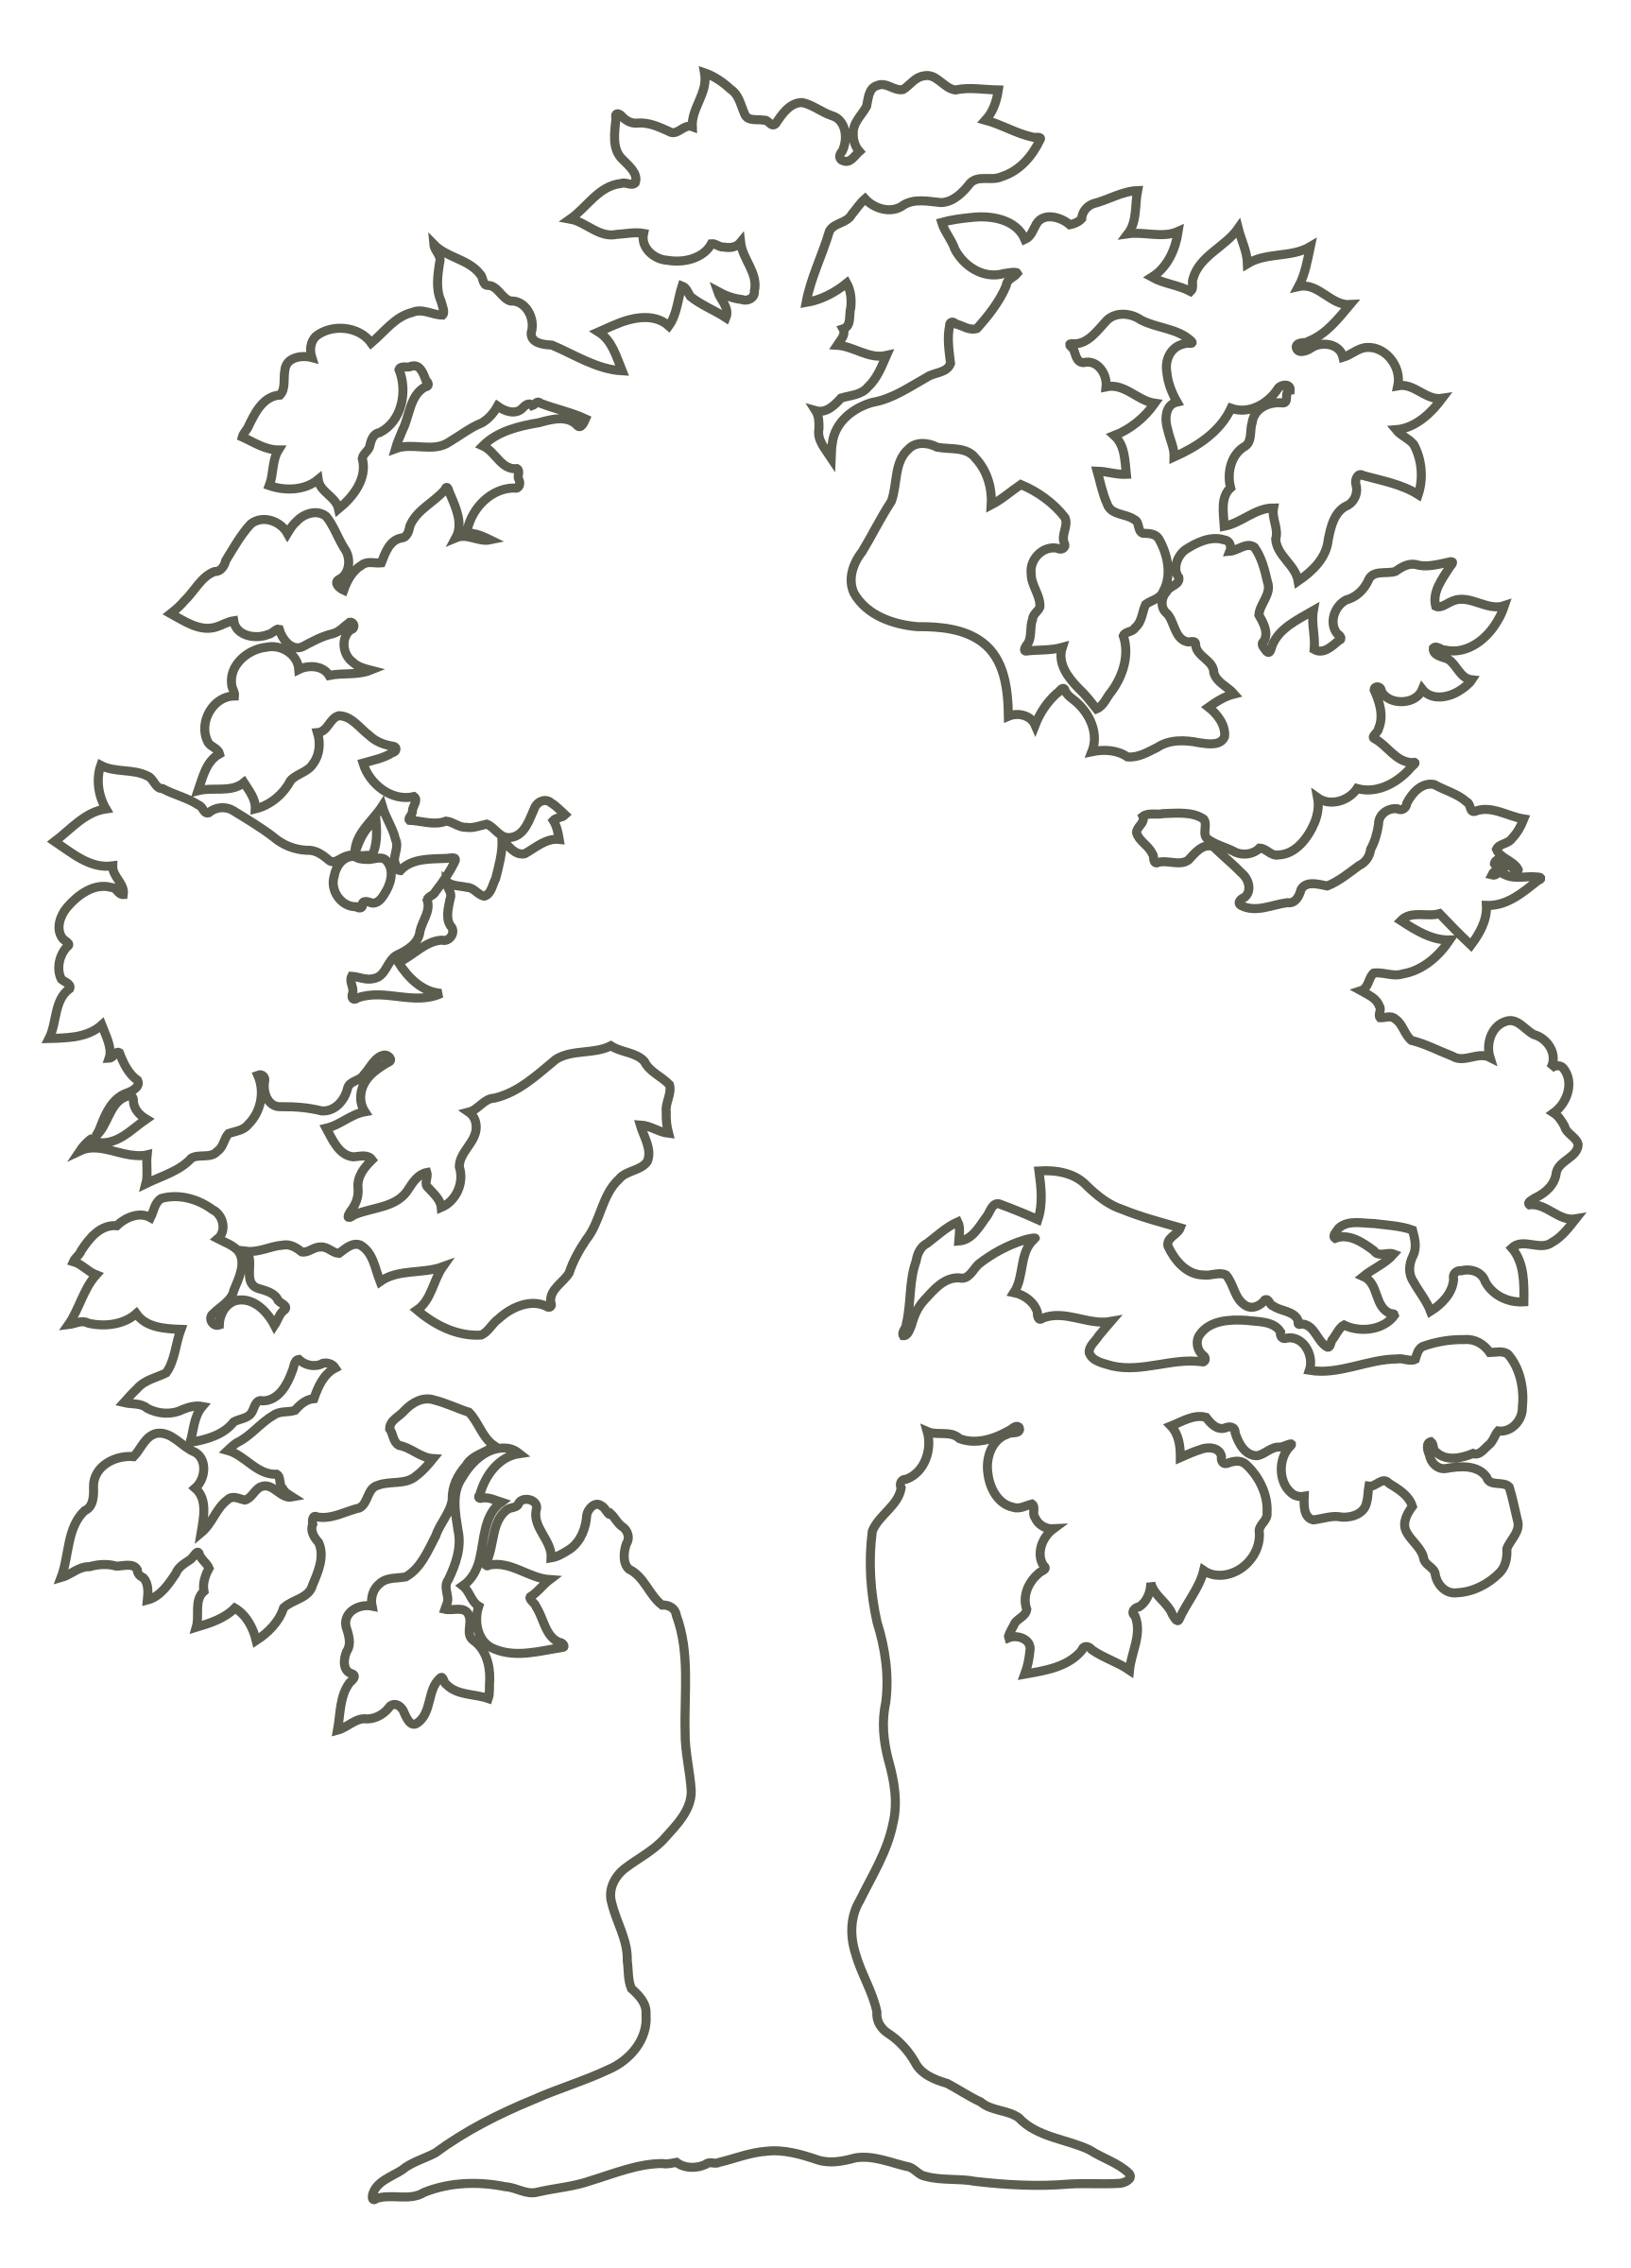 Simple Flowering Tree Outline By Andy Silhouette Of Flowering Tree Clipart On Openclipart